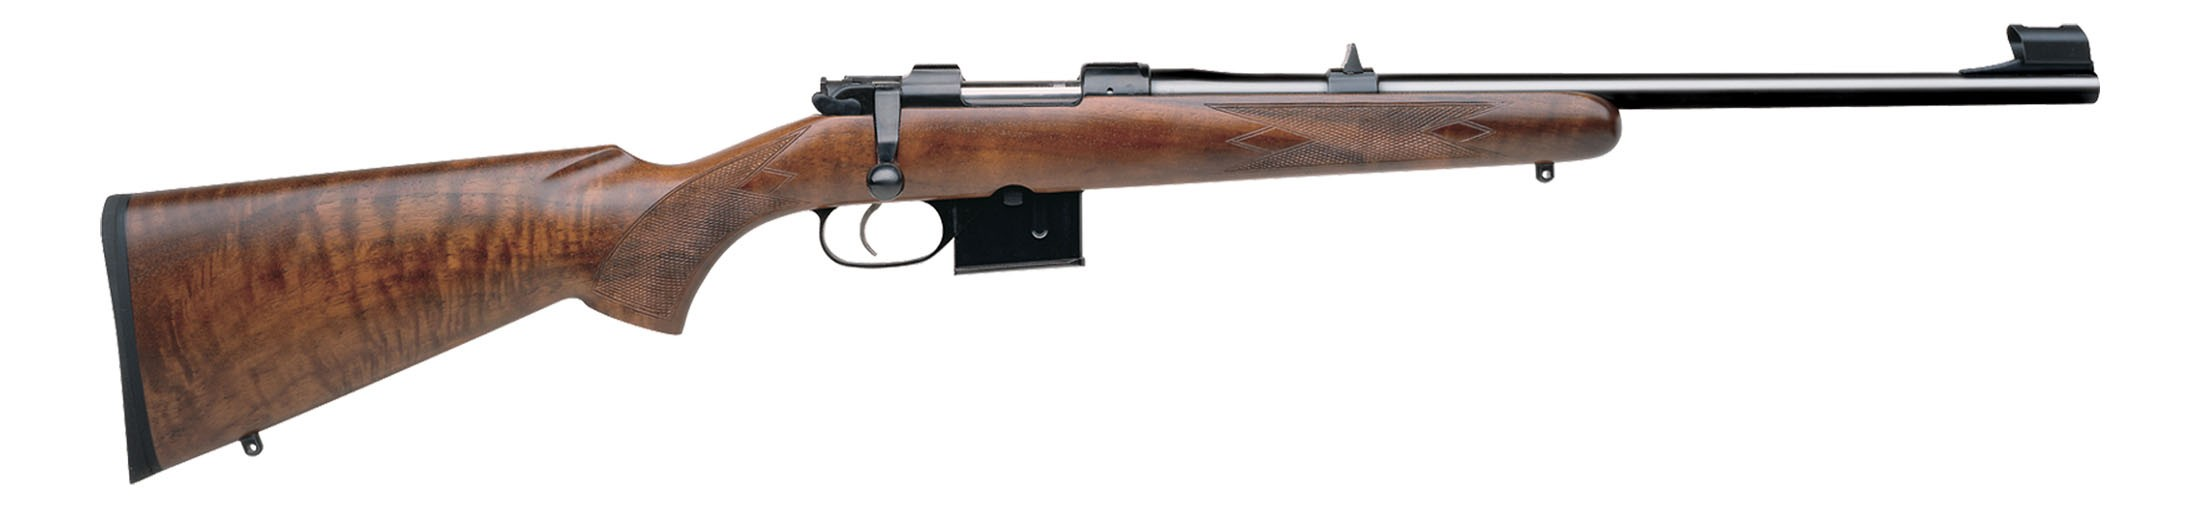 CZ 527 Carbine With Sights